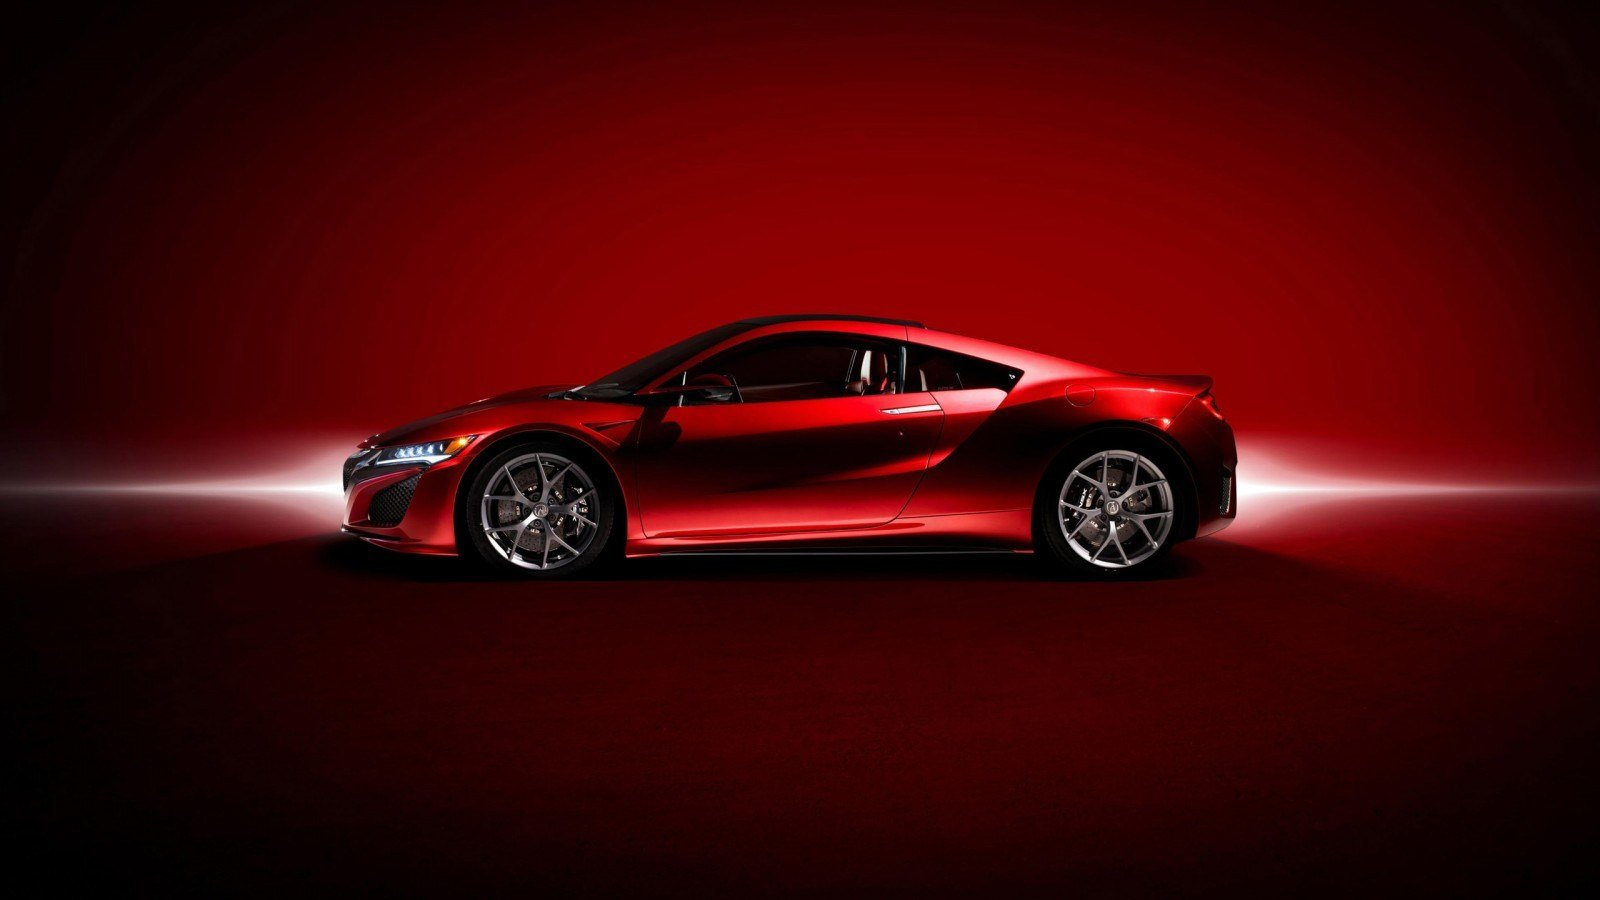 Latest Acura Nsx 2017 Wallpaper Hd Car Wallpapers Id 6575 Free Download